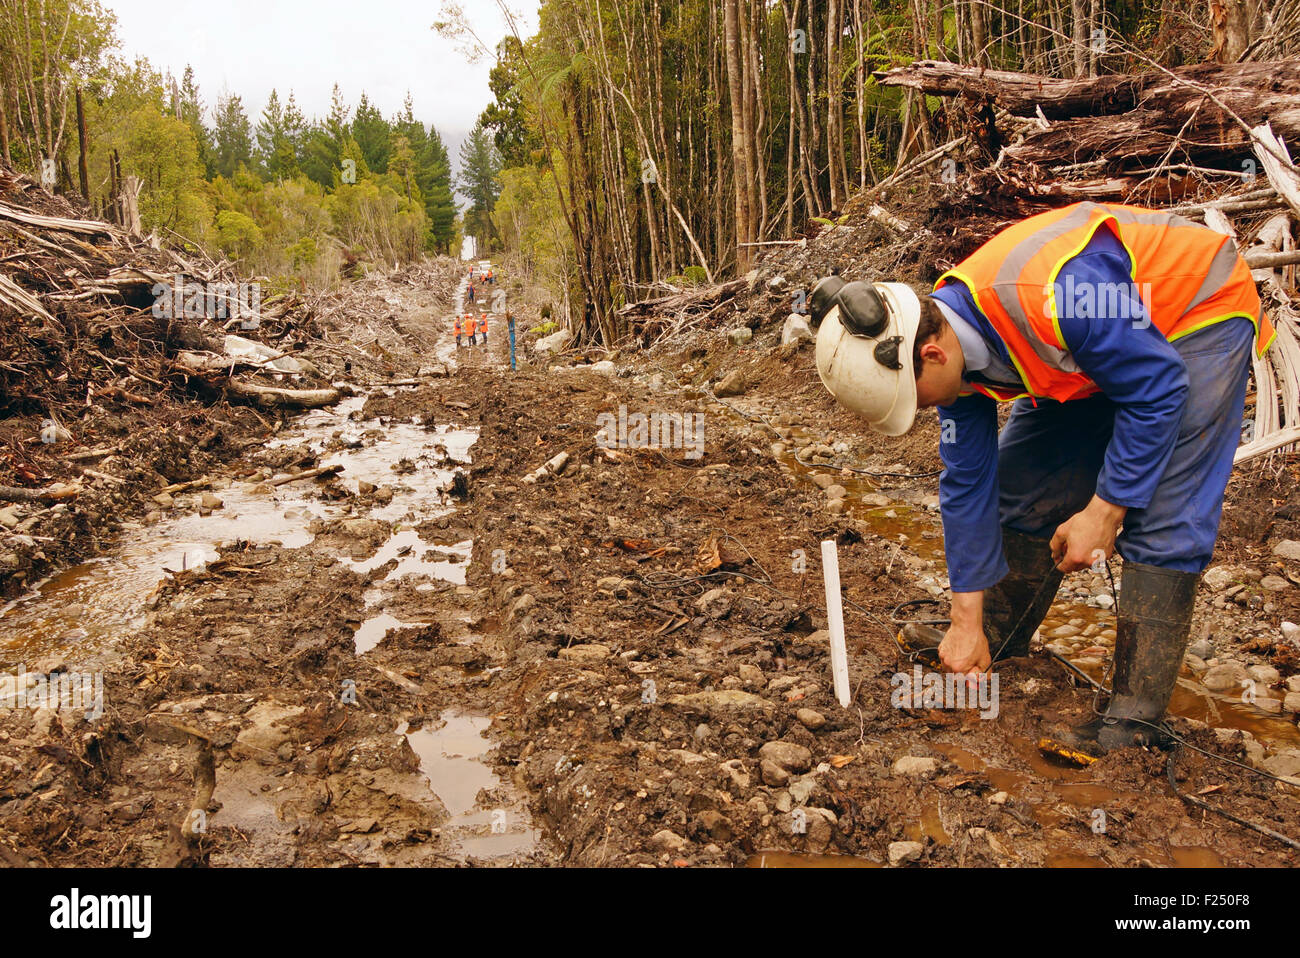 Men placing geophones in the ground for a seismic reflective survey on the West Coast of New Zealand - Stock Image